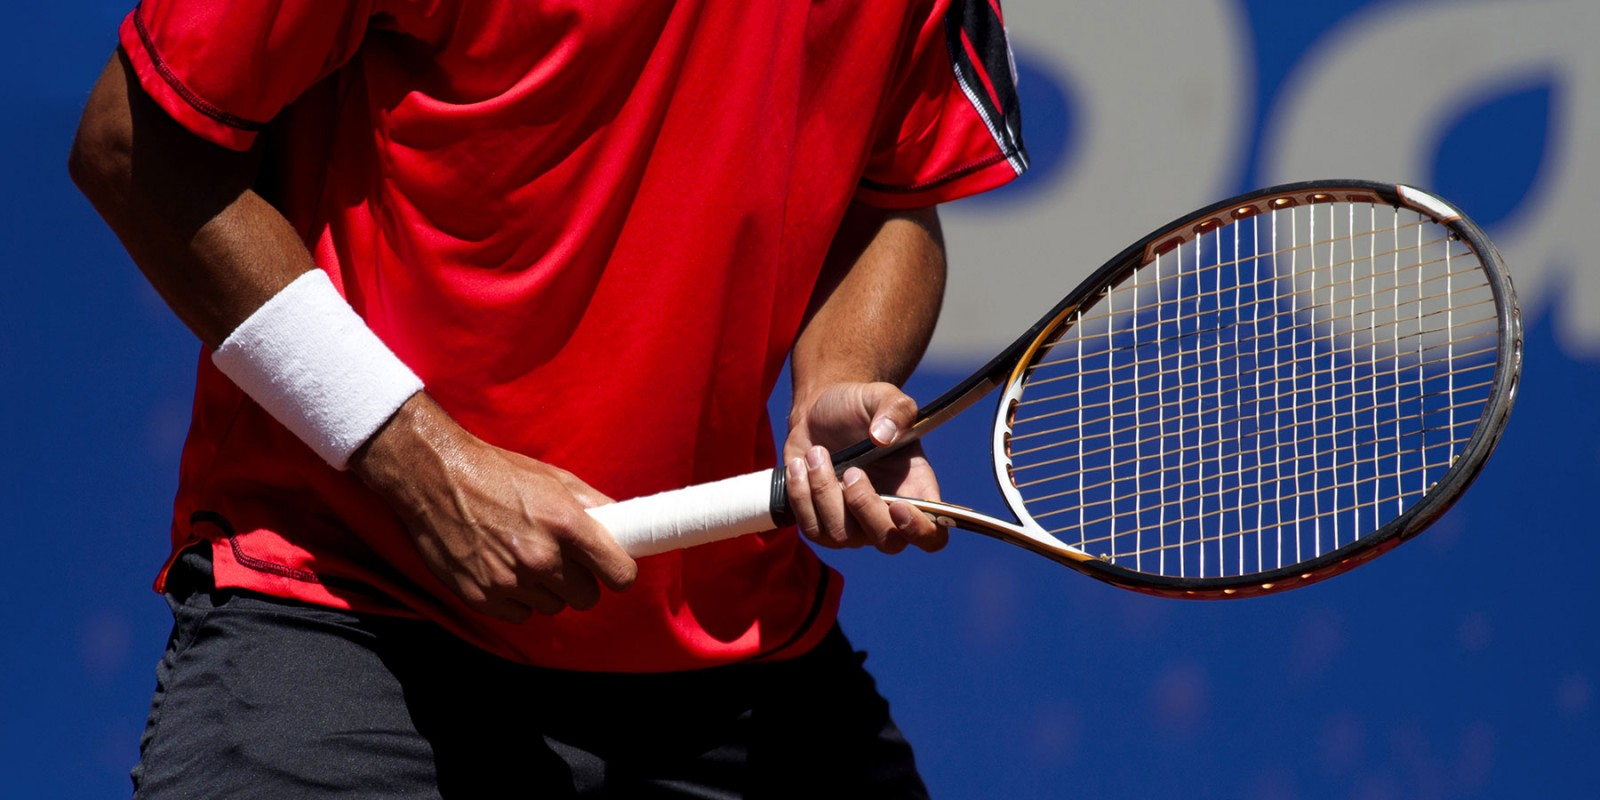 Elbow and wrist injuries in tennis